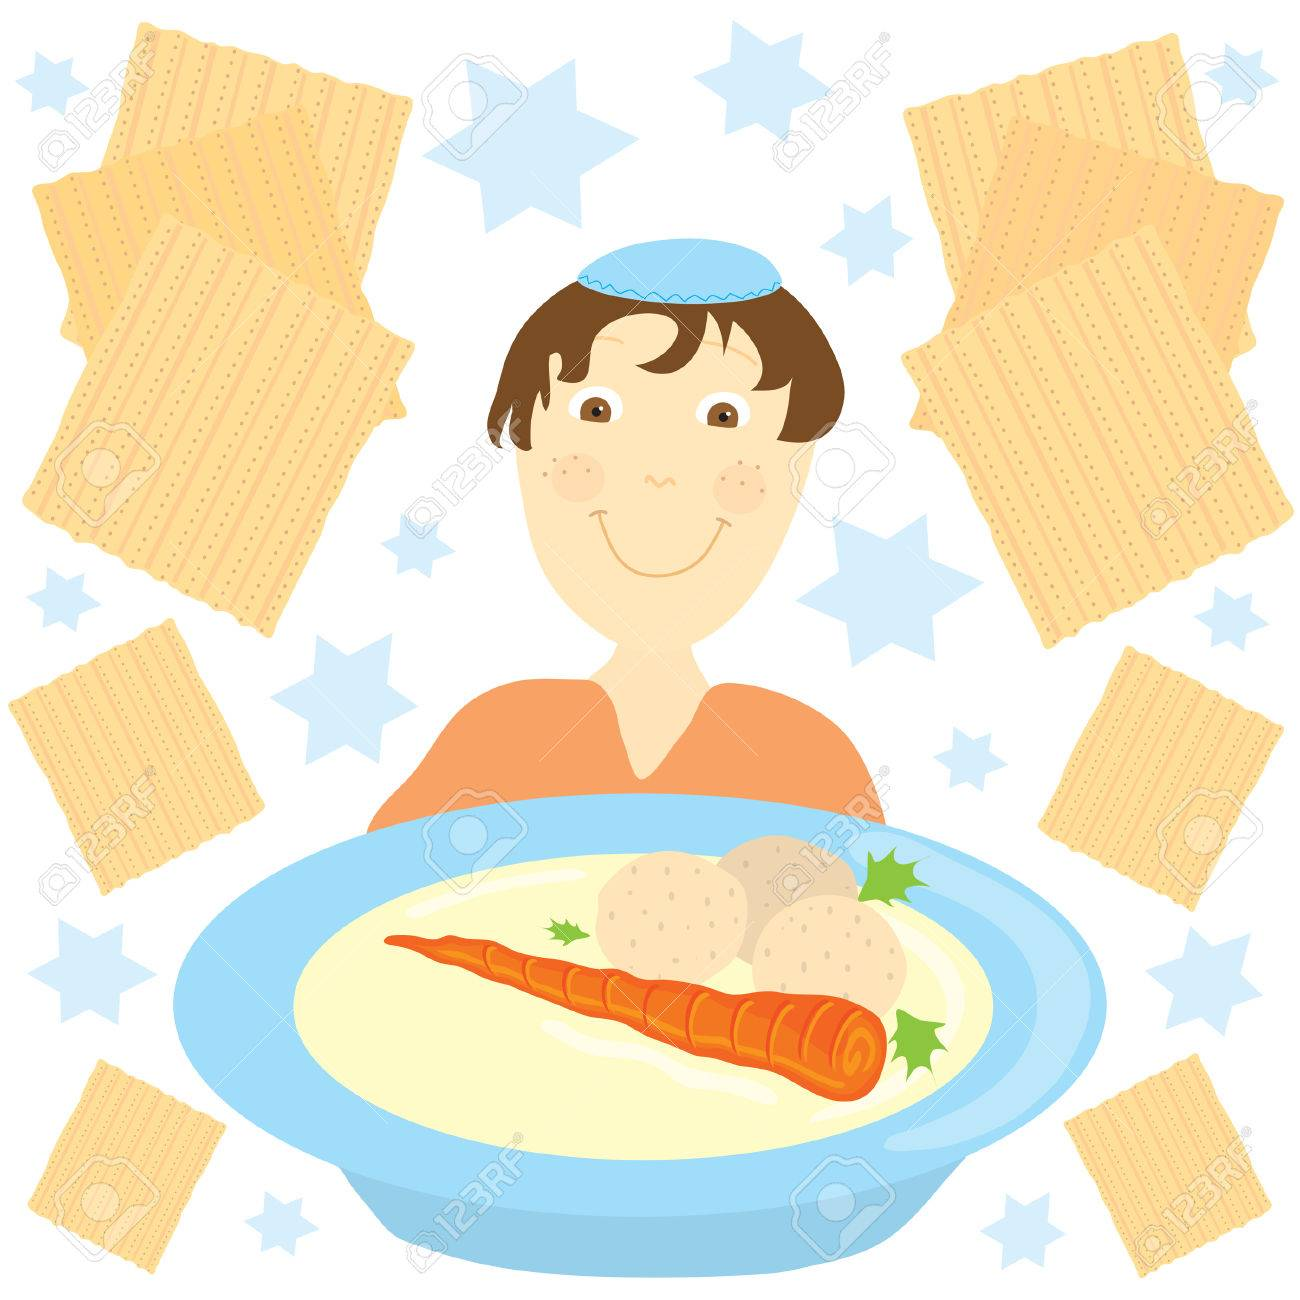 Jewish boy with a big bowl of matzo ball soup surrounded by matzos and jewish stars Stock Vector - 4653433